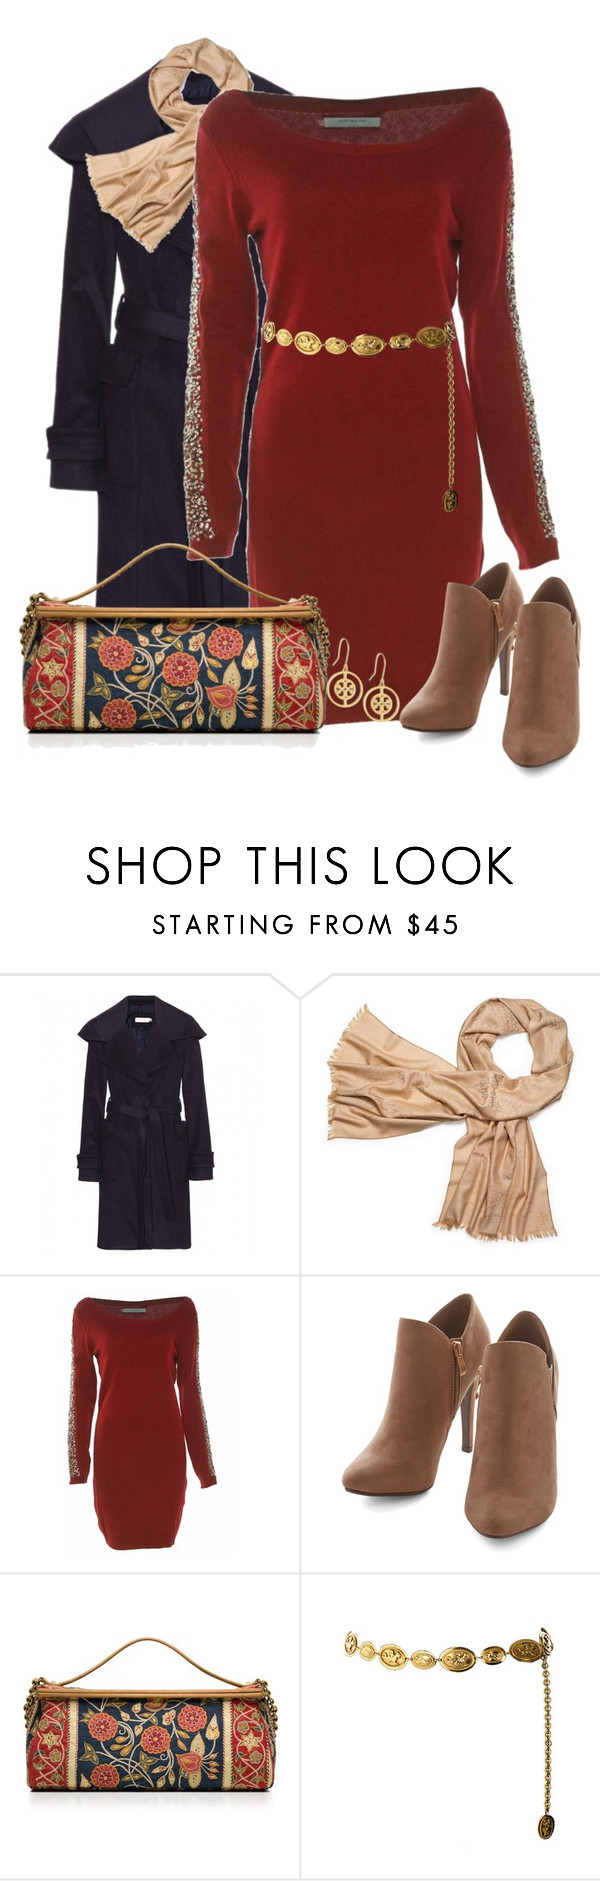 """""""Sweater dress"""" by elizabethdawes ❤ liked on Polyvore featuring Tory Burch, Chanel, ToryBurch and sweaterdress"""